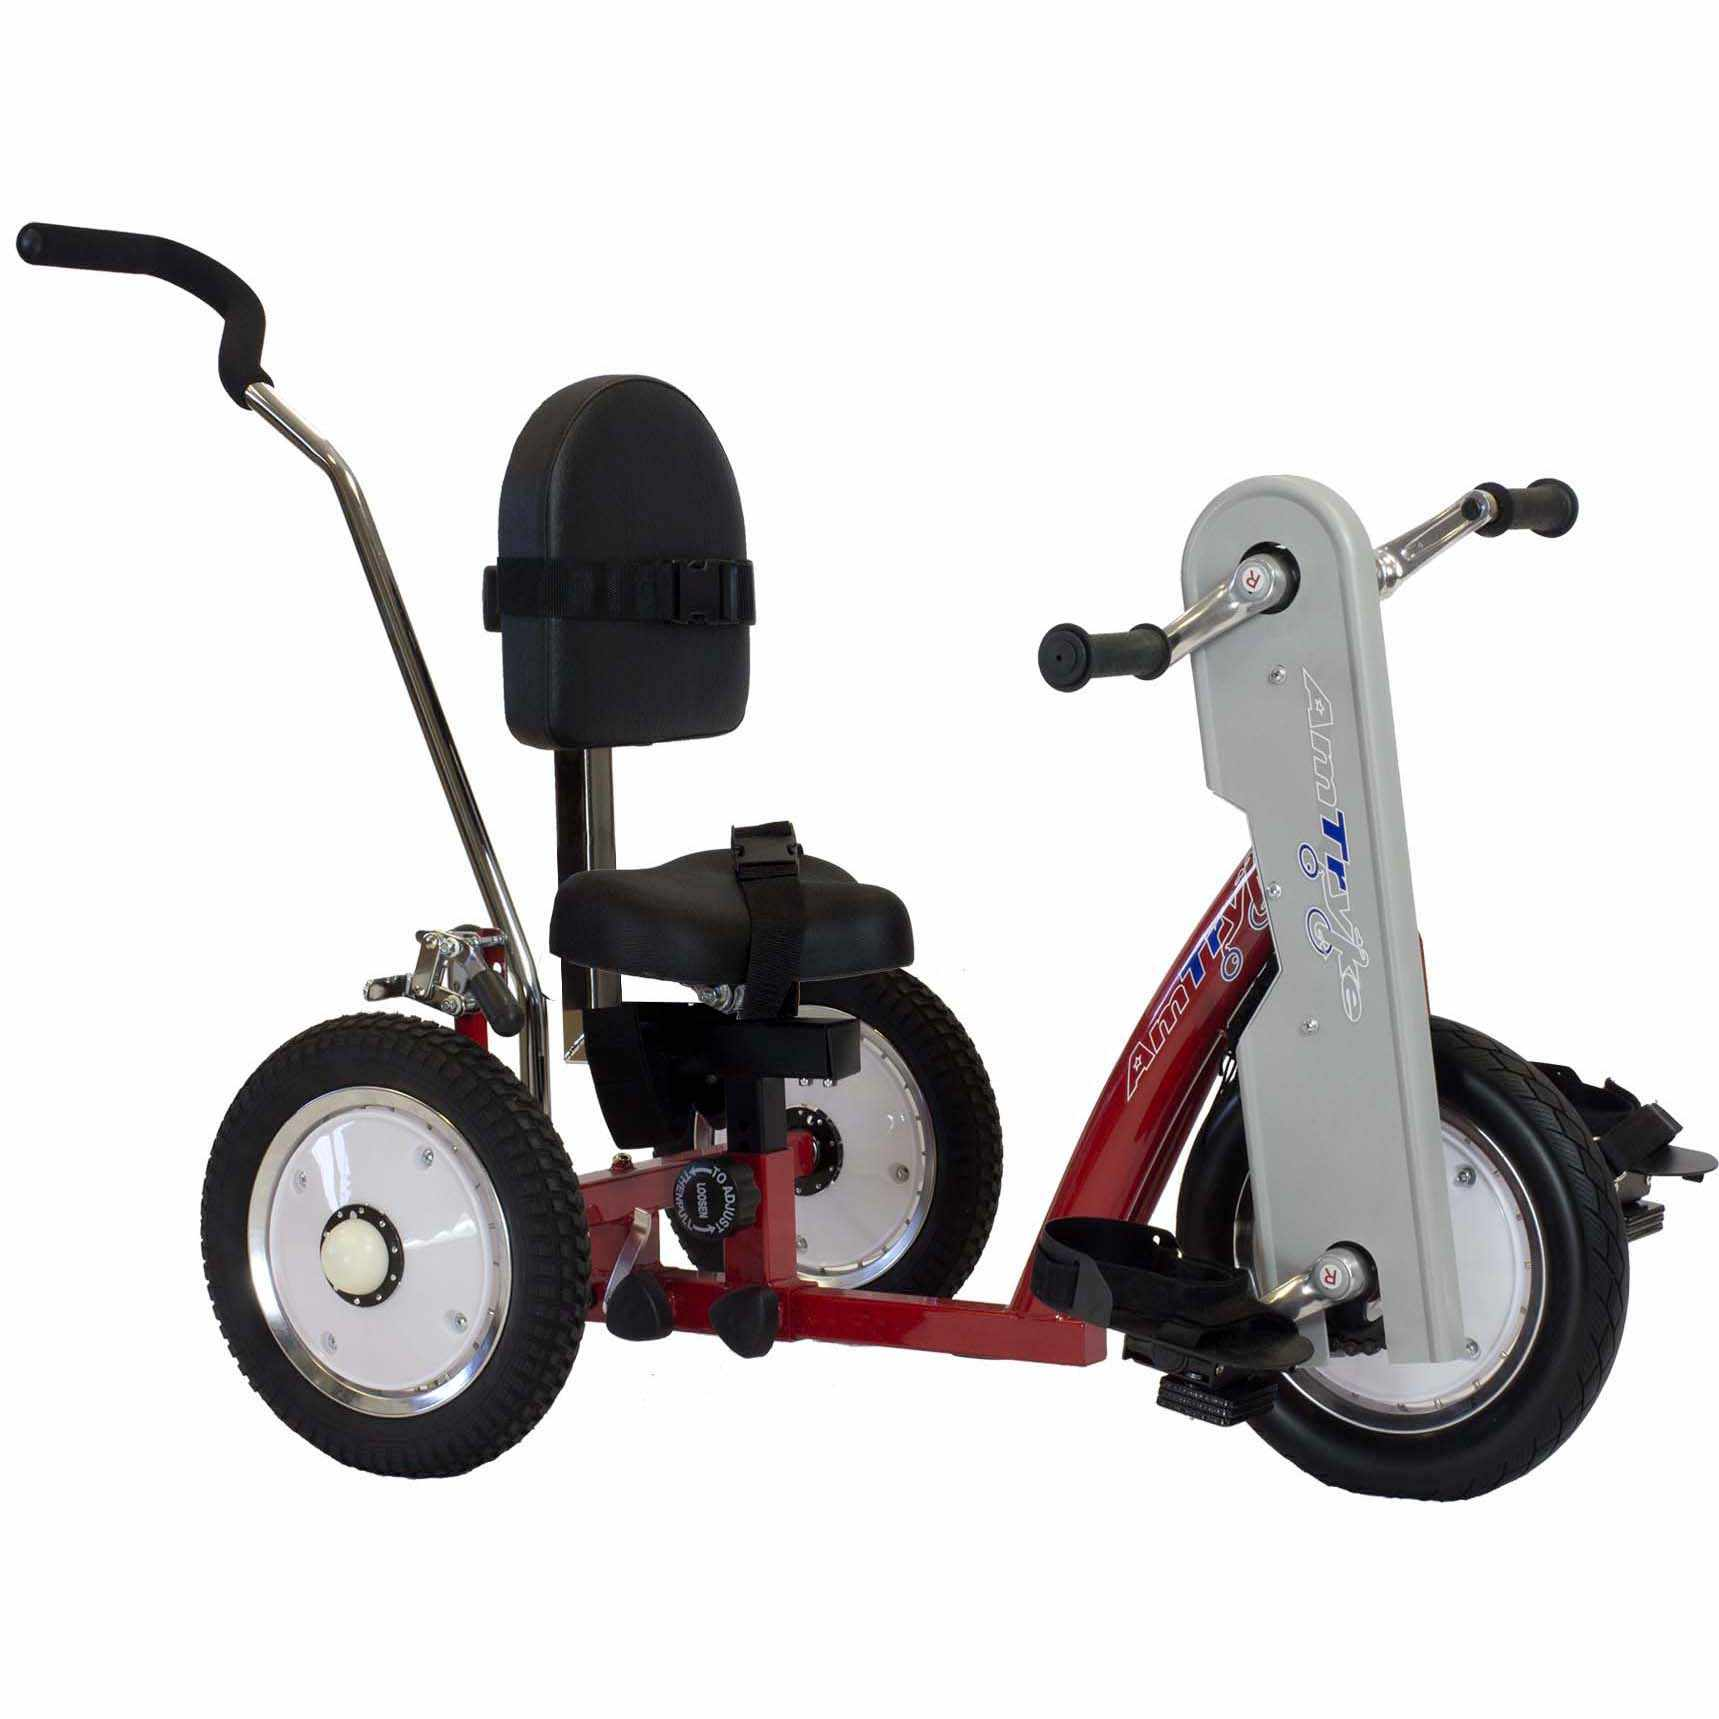 Amtryke AM-16 tricycle with 1600 seating system